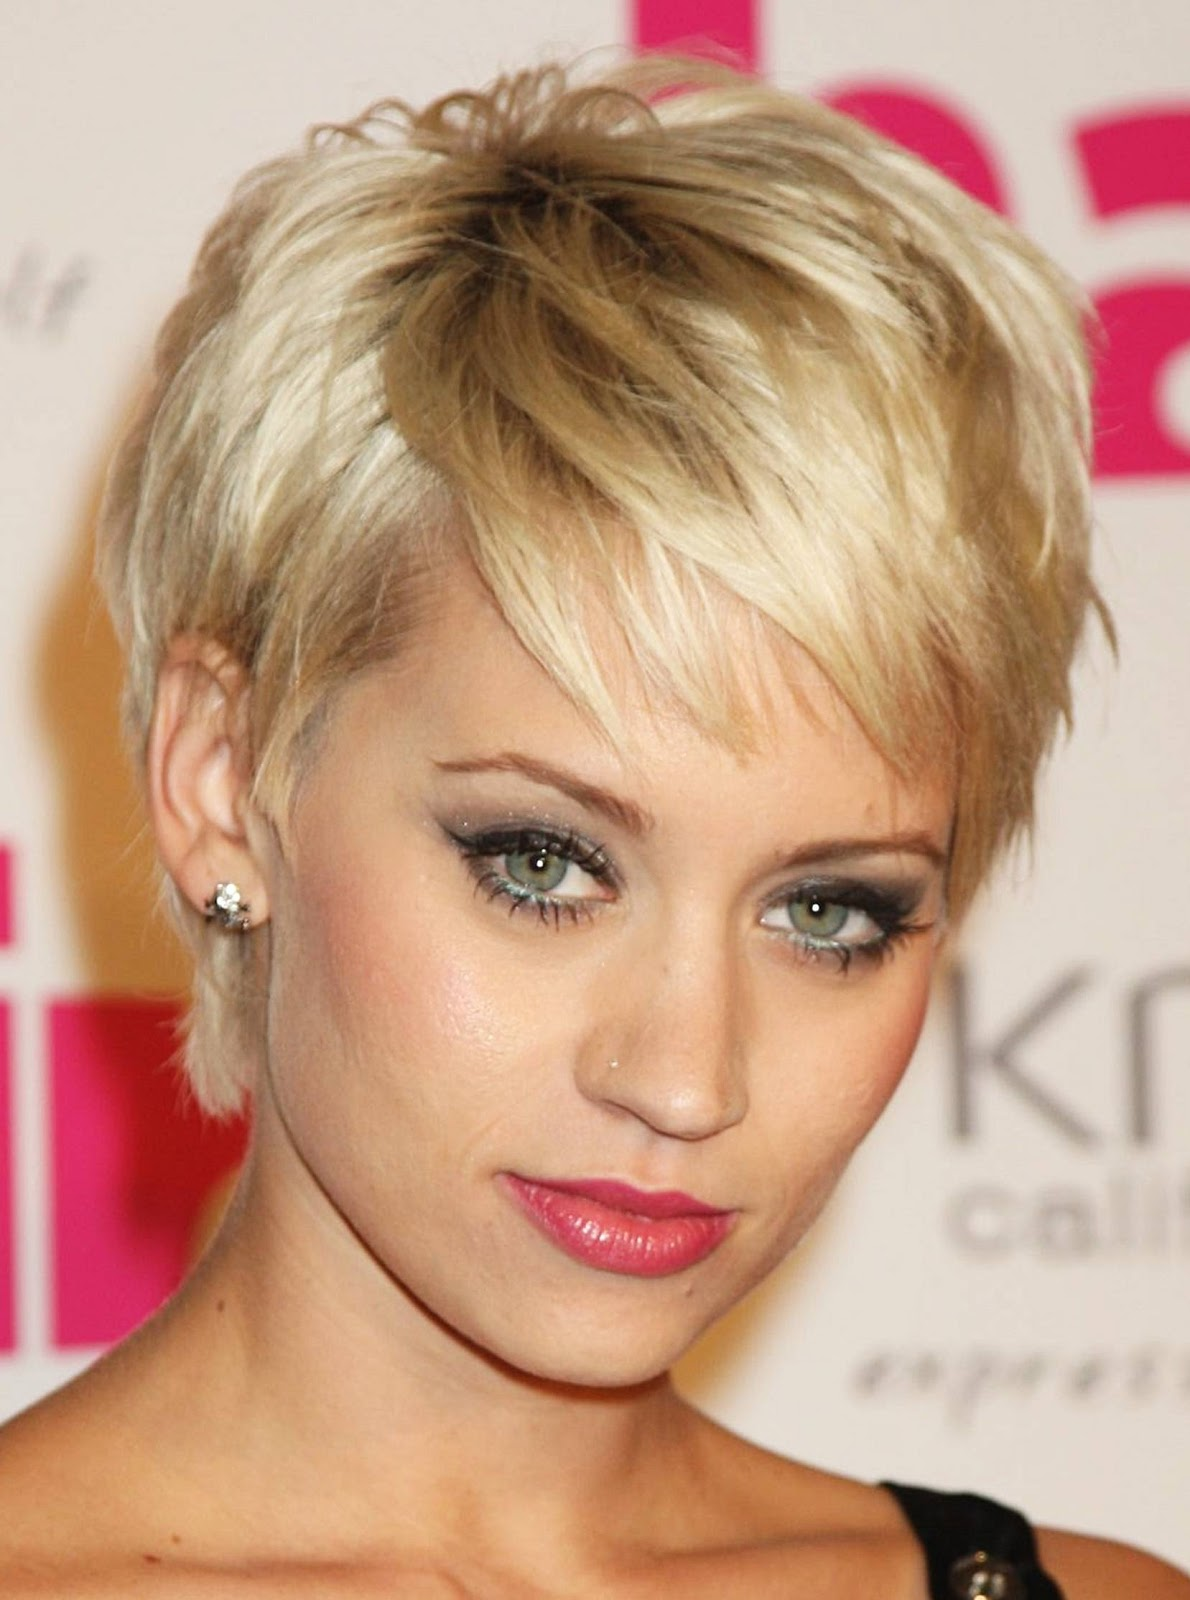 cool short hairstyles trends short hairstyles short hairstyles title=